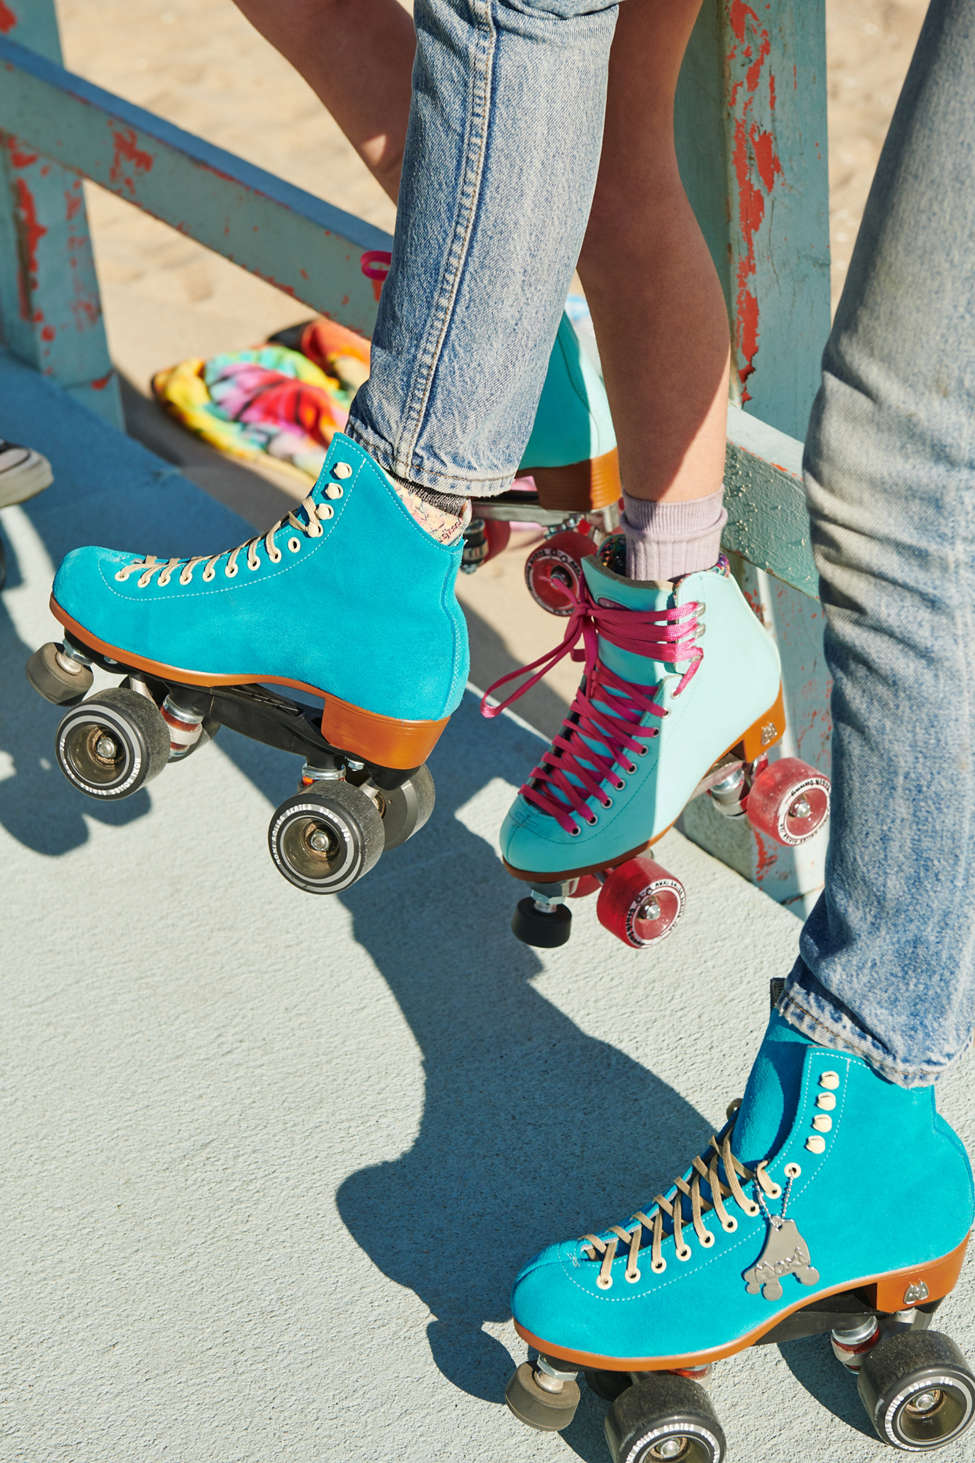 Moxi Suede Roller Skates Urban Outfitters